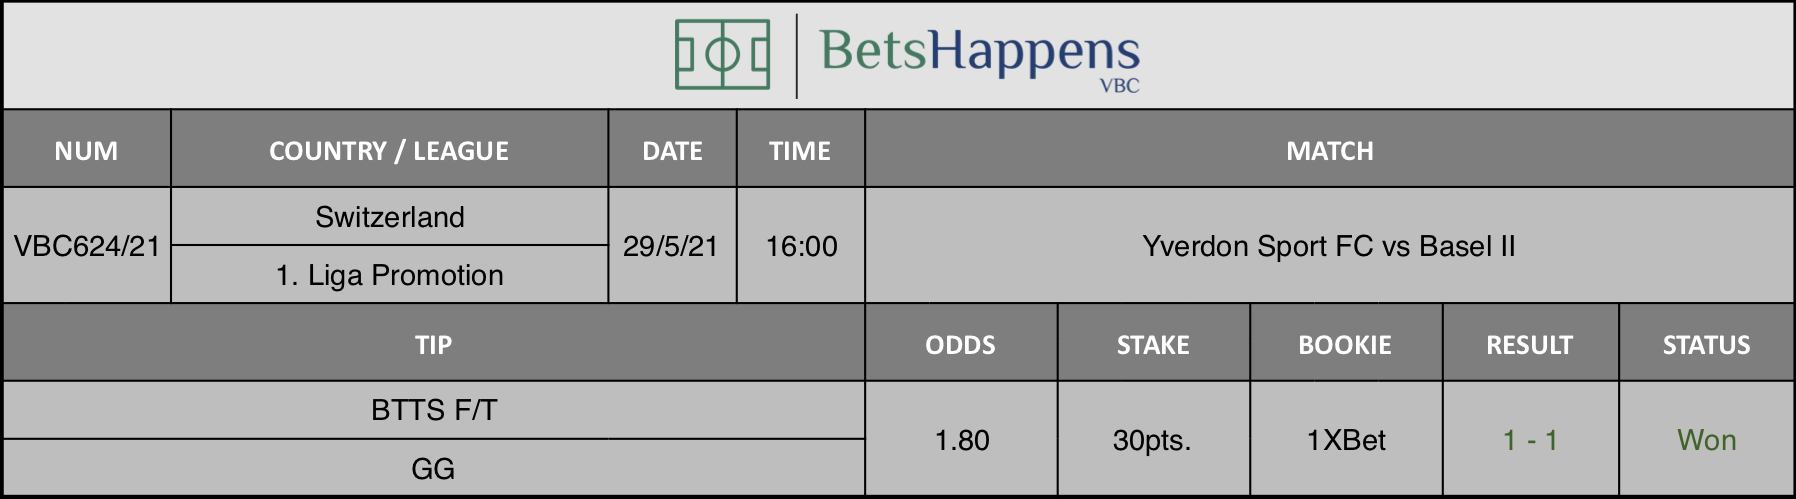 Results of our tip for the Yverdon Sport FC vs Basel II match where BTTS F/T  GG is recommended.